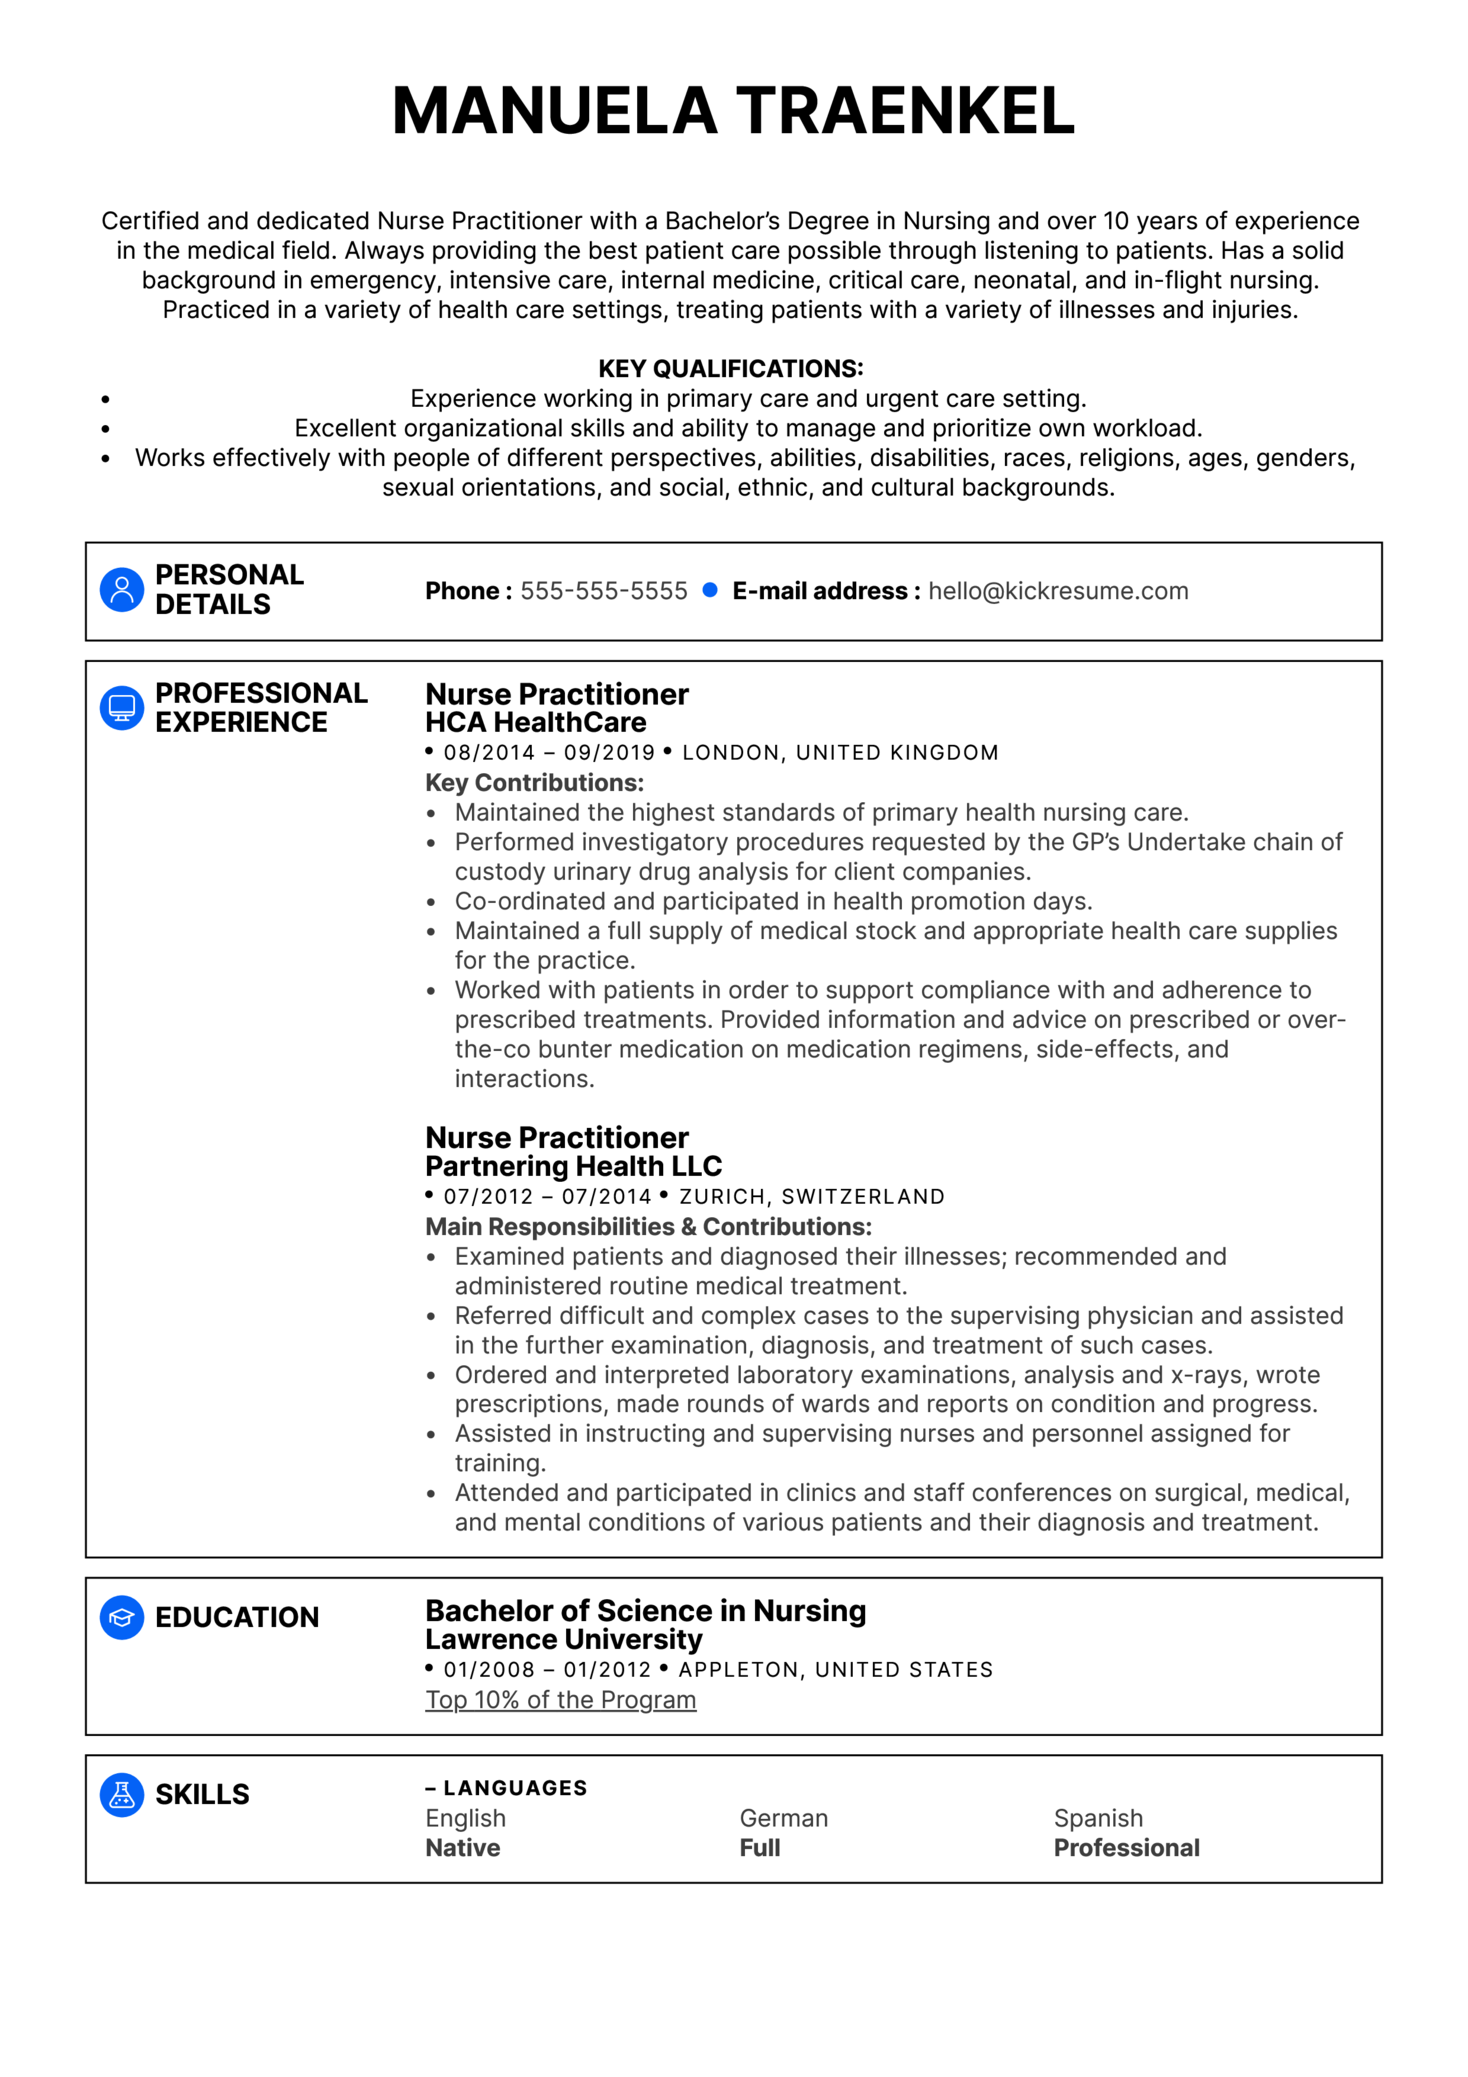 resume examples by real people  nurse practitioner resume